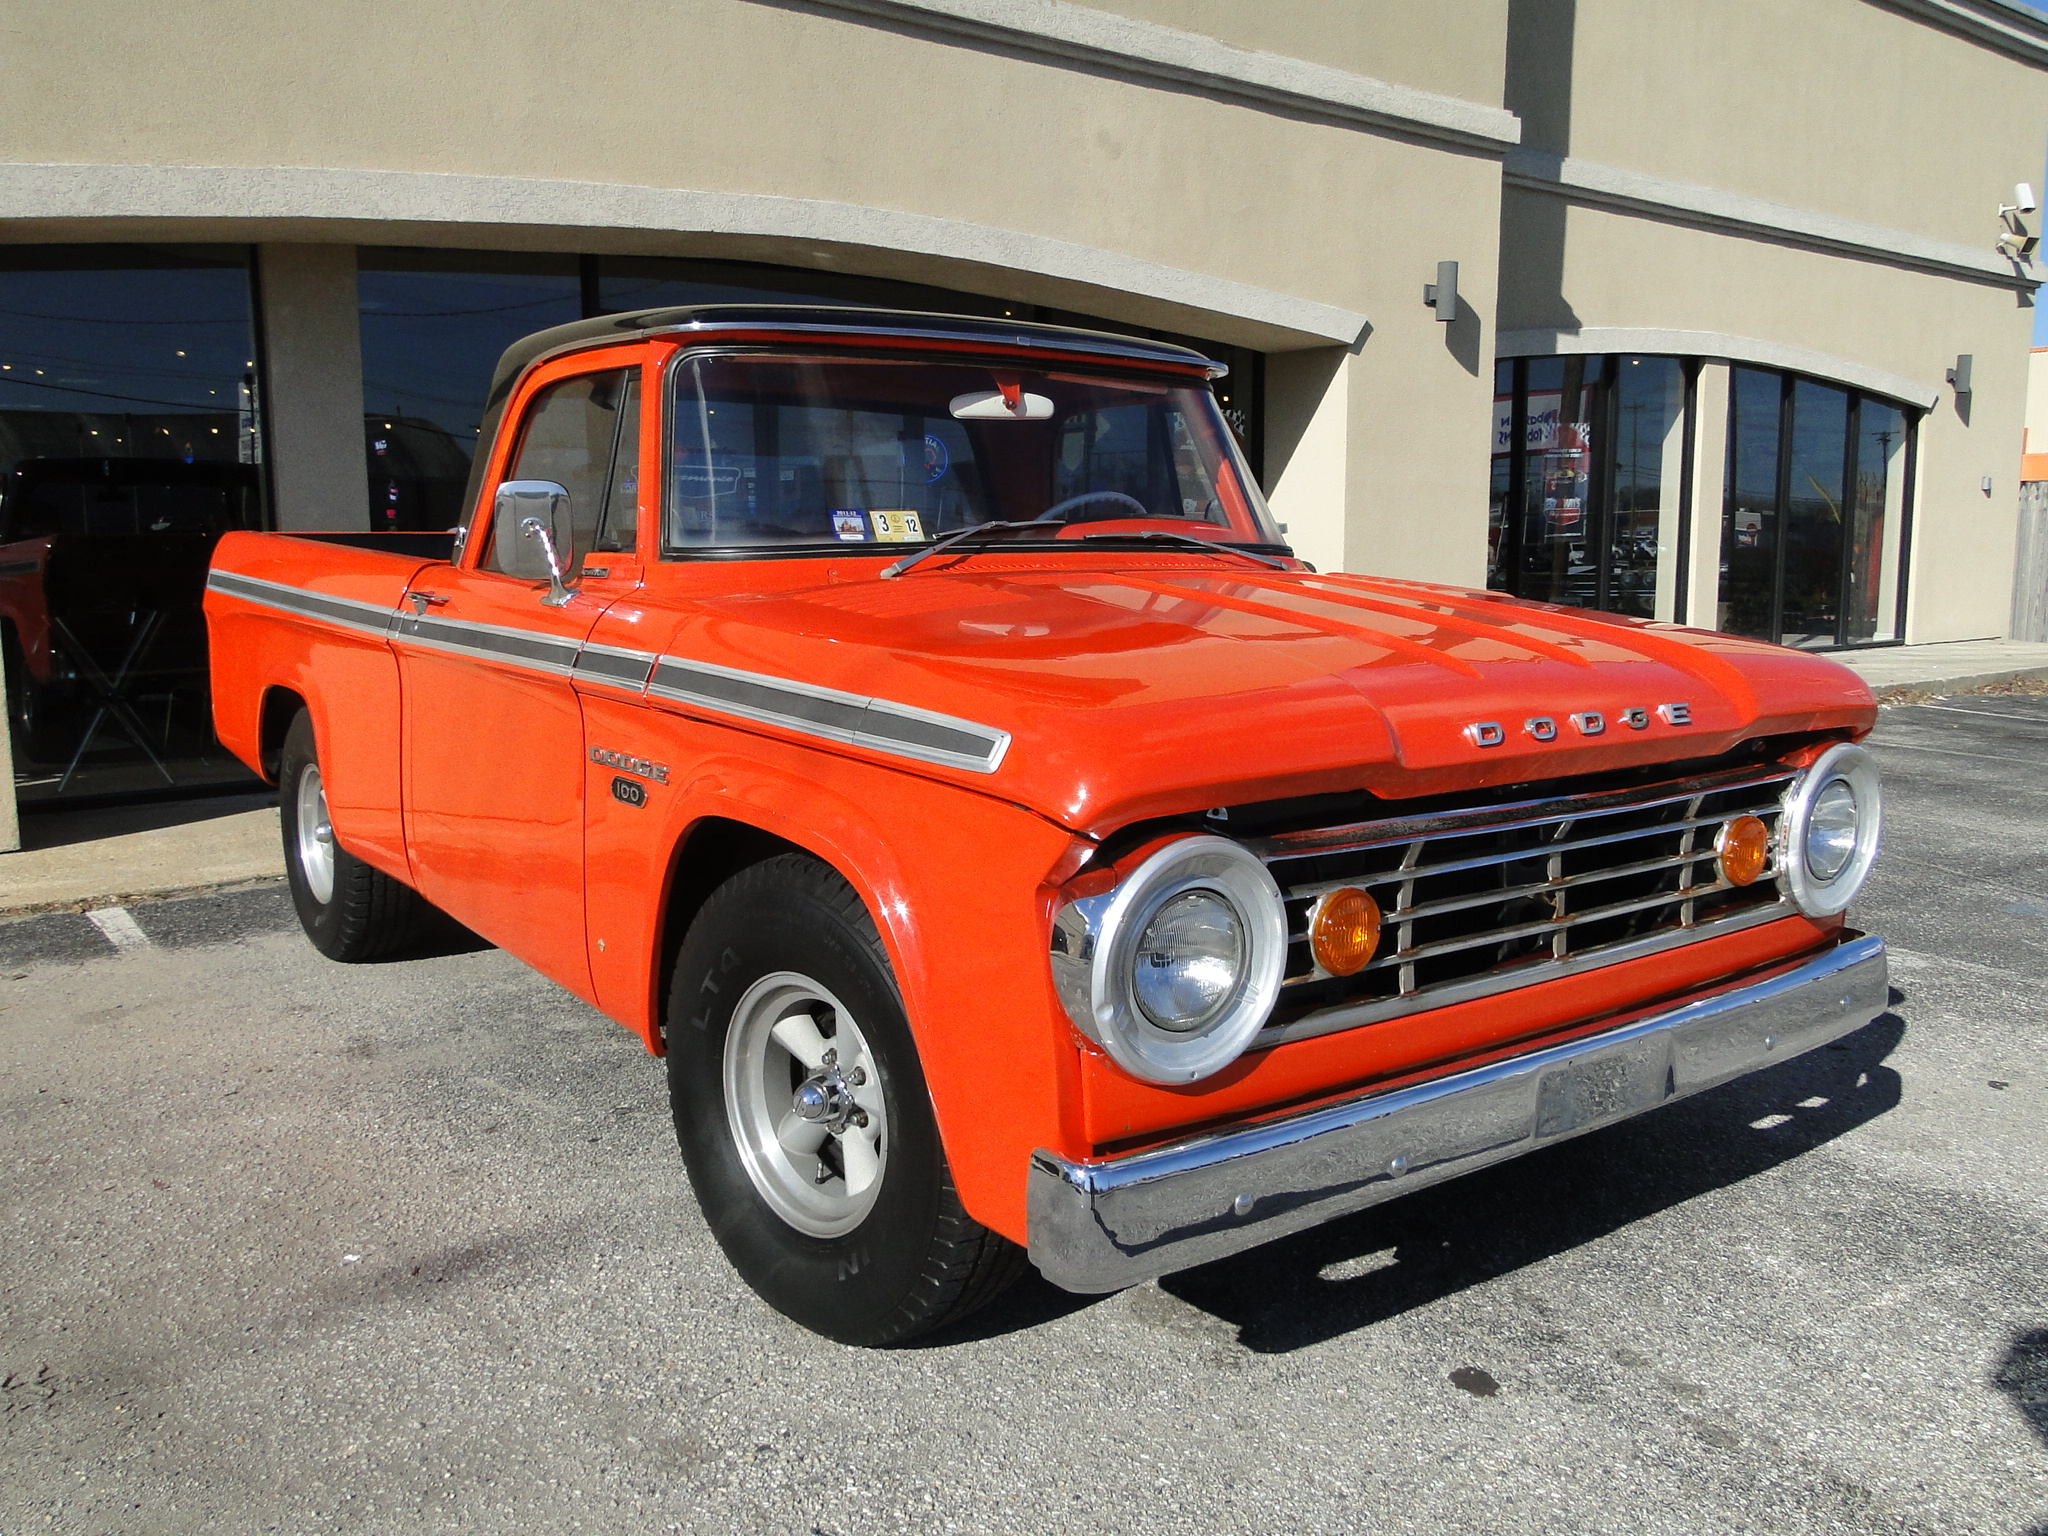 used 1967 dodge d100 for sale glen burnie md tree service logos images in kansas tree service logos for truck